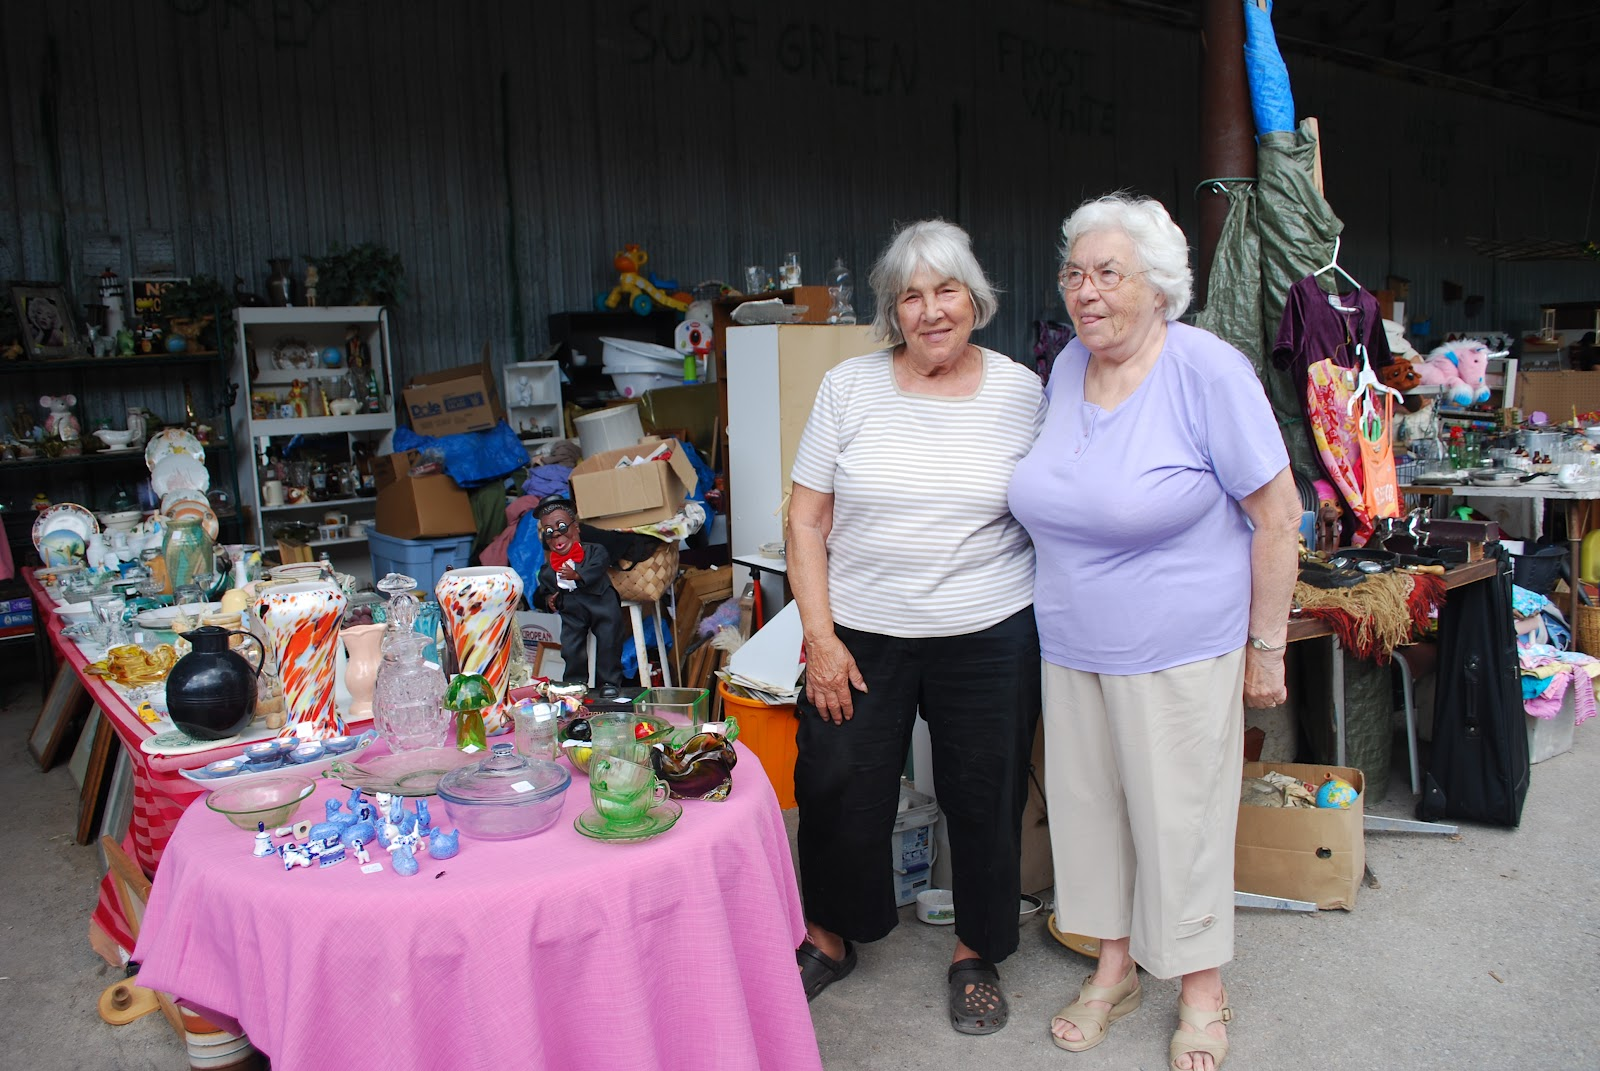 Reflective Thoughts by Barbara: A DAY AT A CANADIAN FLEA